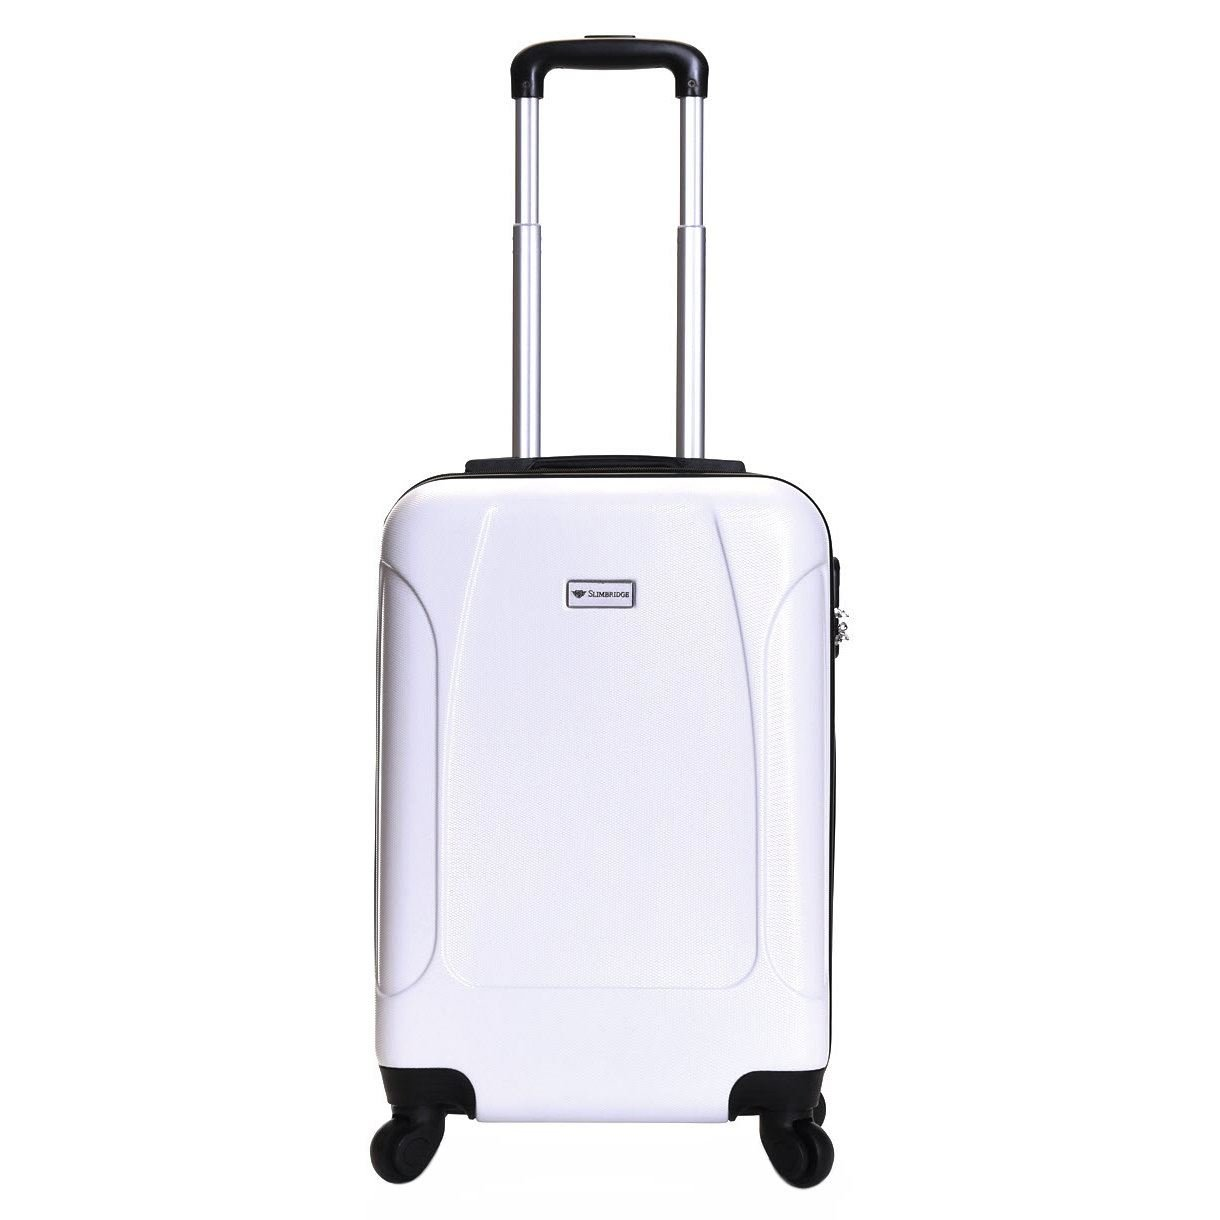 Slimbridge Alameda Super Lightweight ABS Hard Shell Travel Carry On Cabin Hand Luggage Suitcase with 4 Wheels, Approved for Ryanair, EasyJet, British Airways, Virgin Atlantic, Flybe and More, Black Karabar Ltd PAL00038